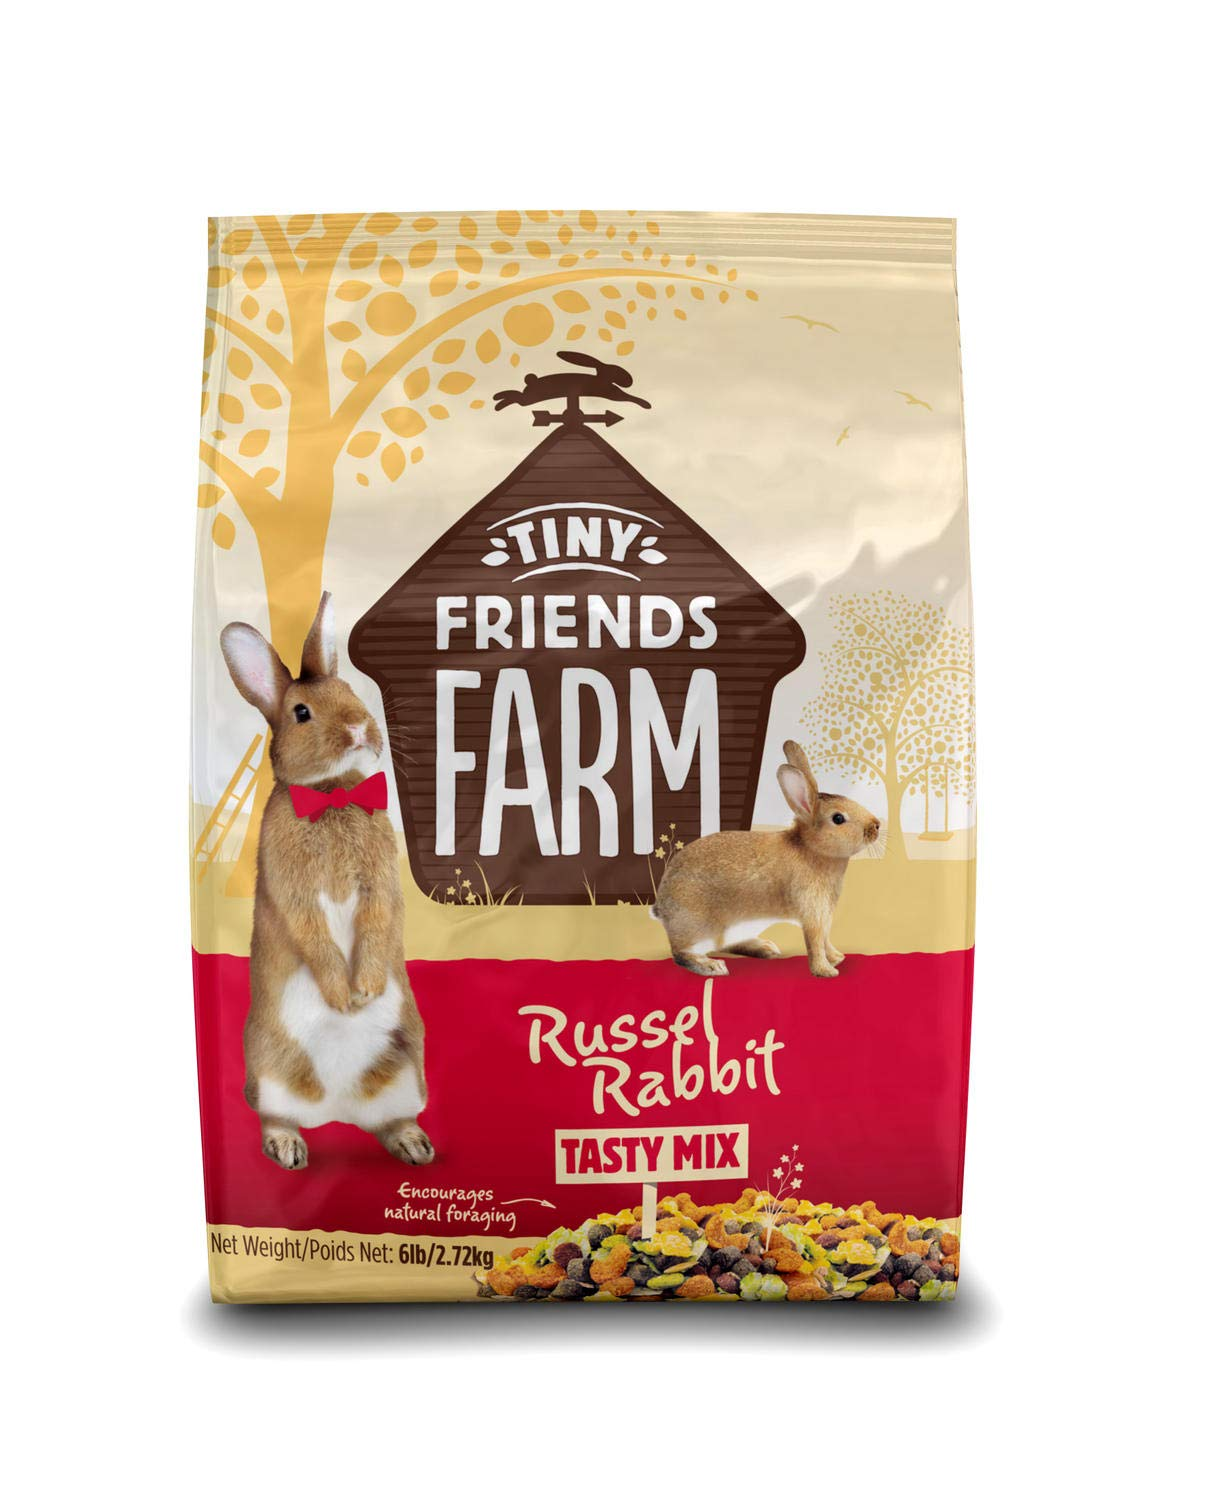 Supreme Petfoods Tiny Friends Farm Russel Rabbit Food, 6 lb by SupremePetfoods